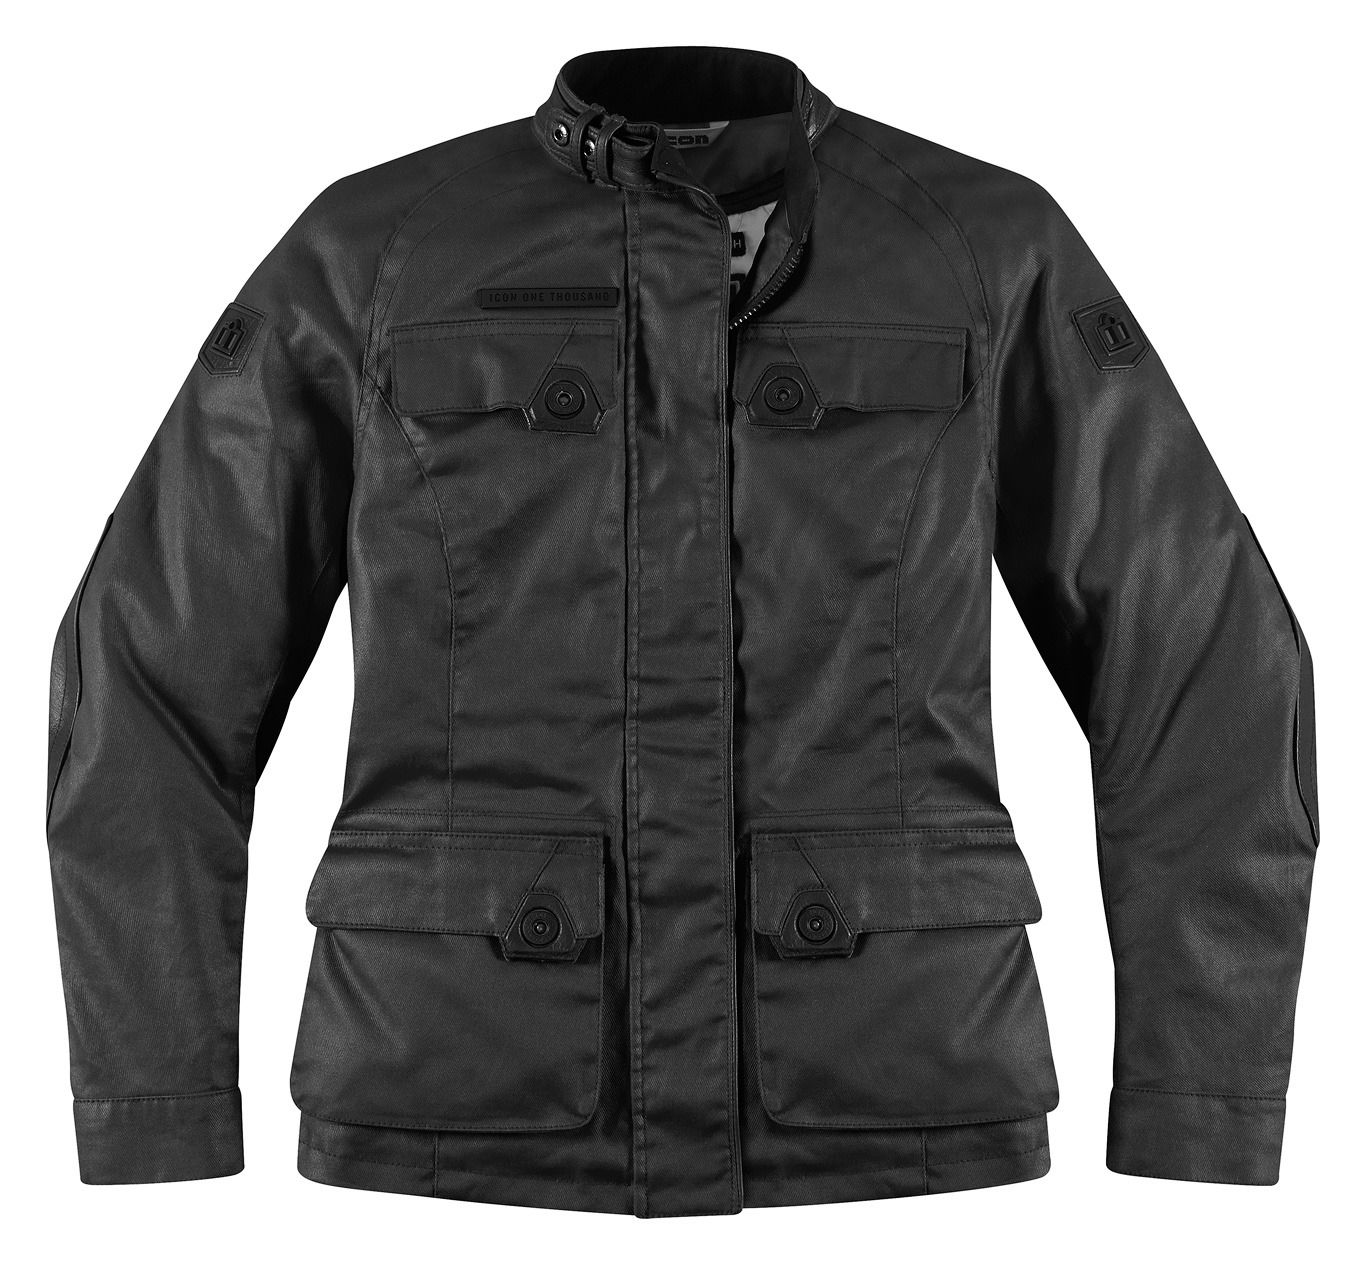 Womens icon motorcycle jackets